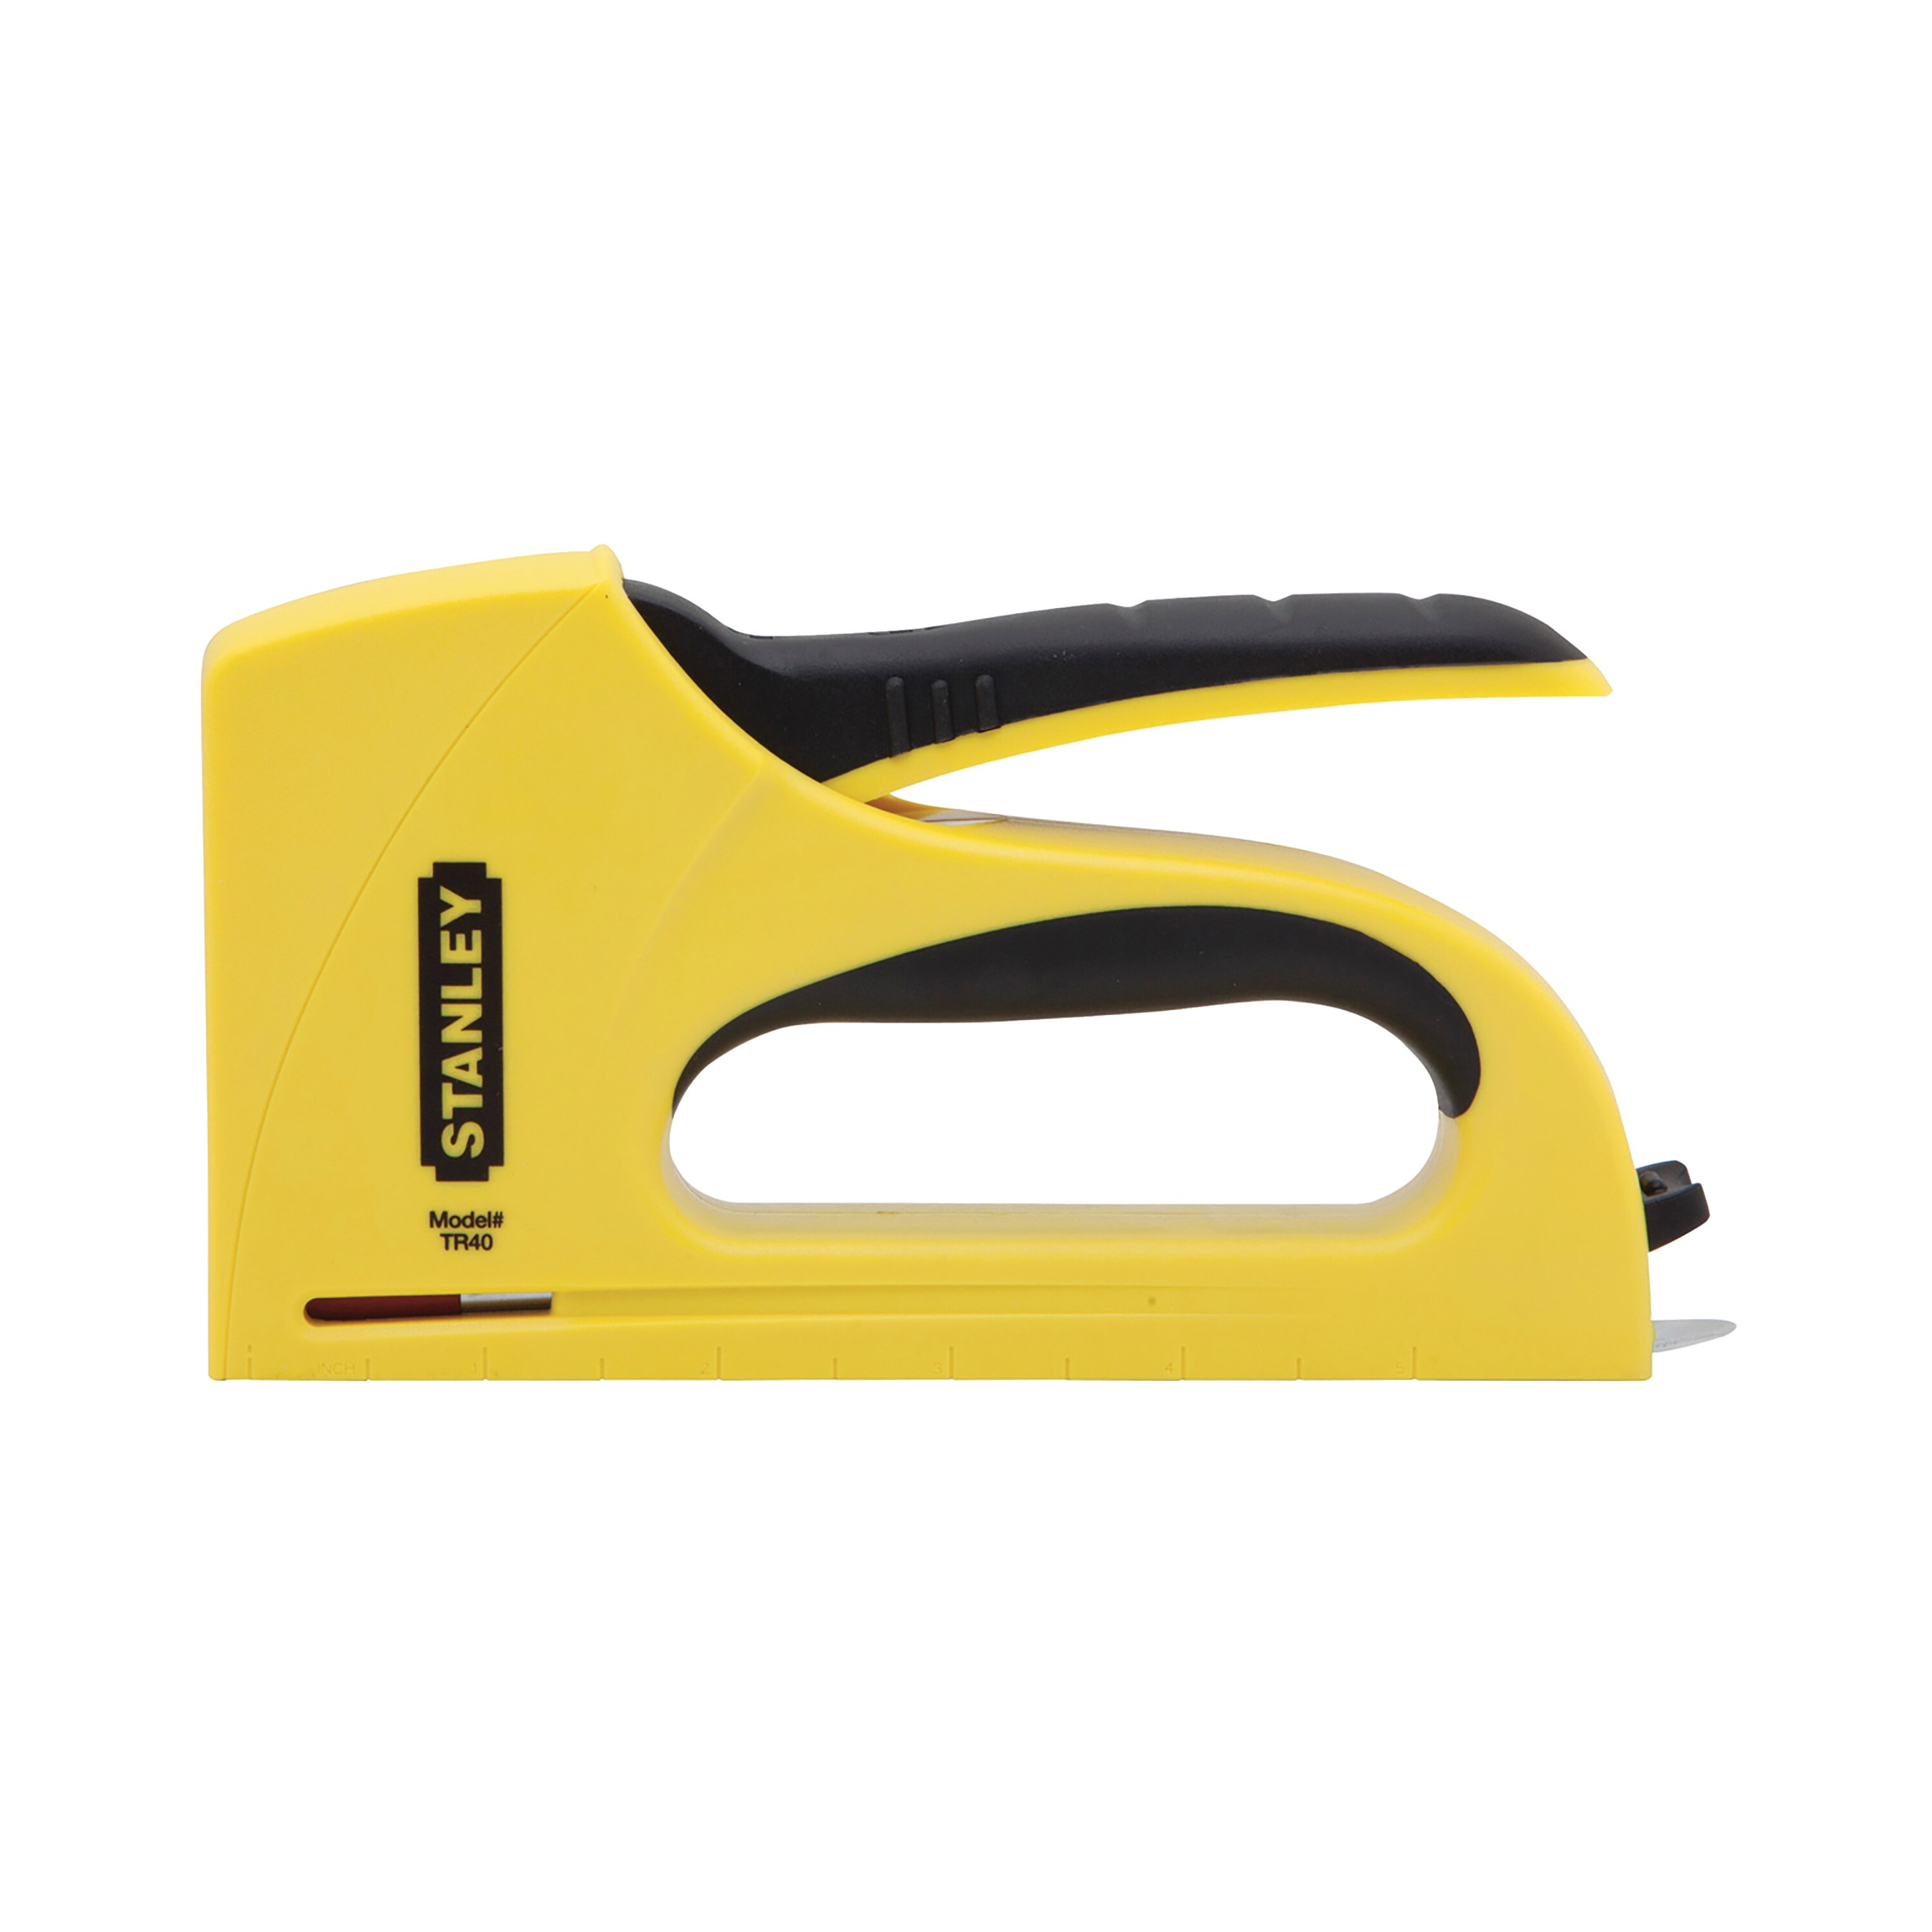 Stanley Tools - Light Duty Tacker - TR40